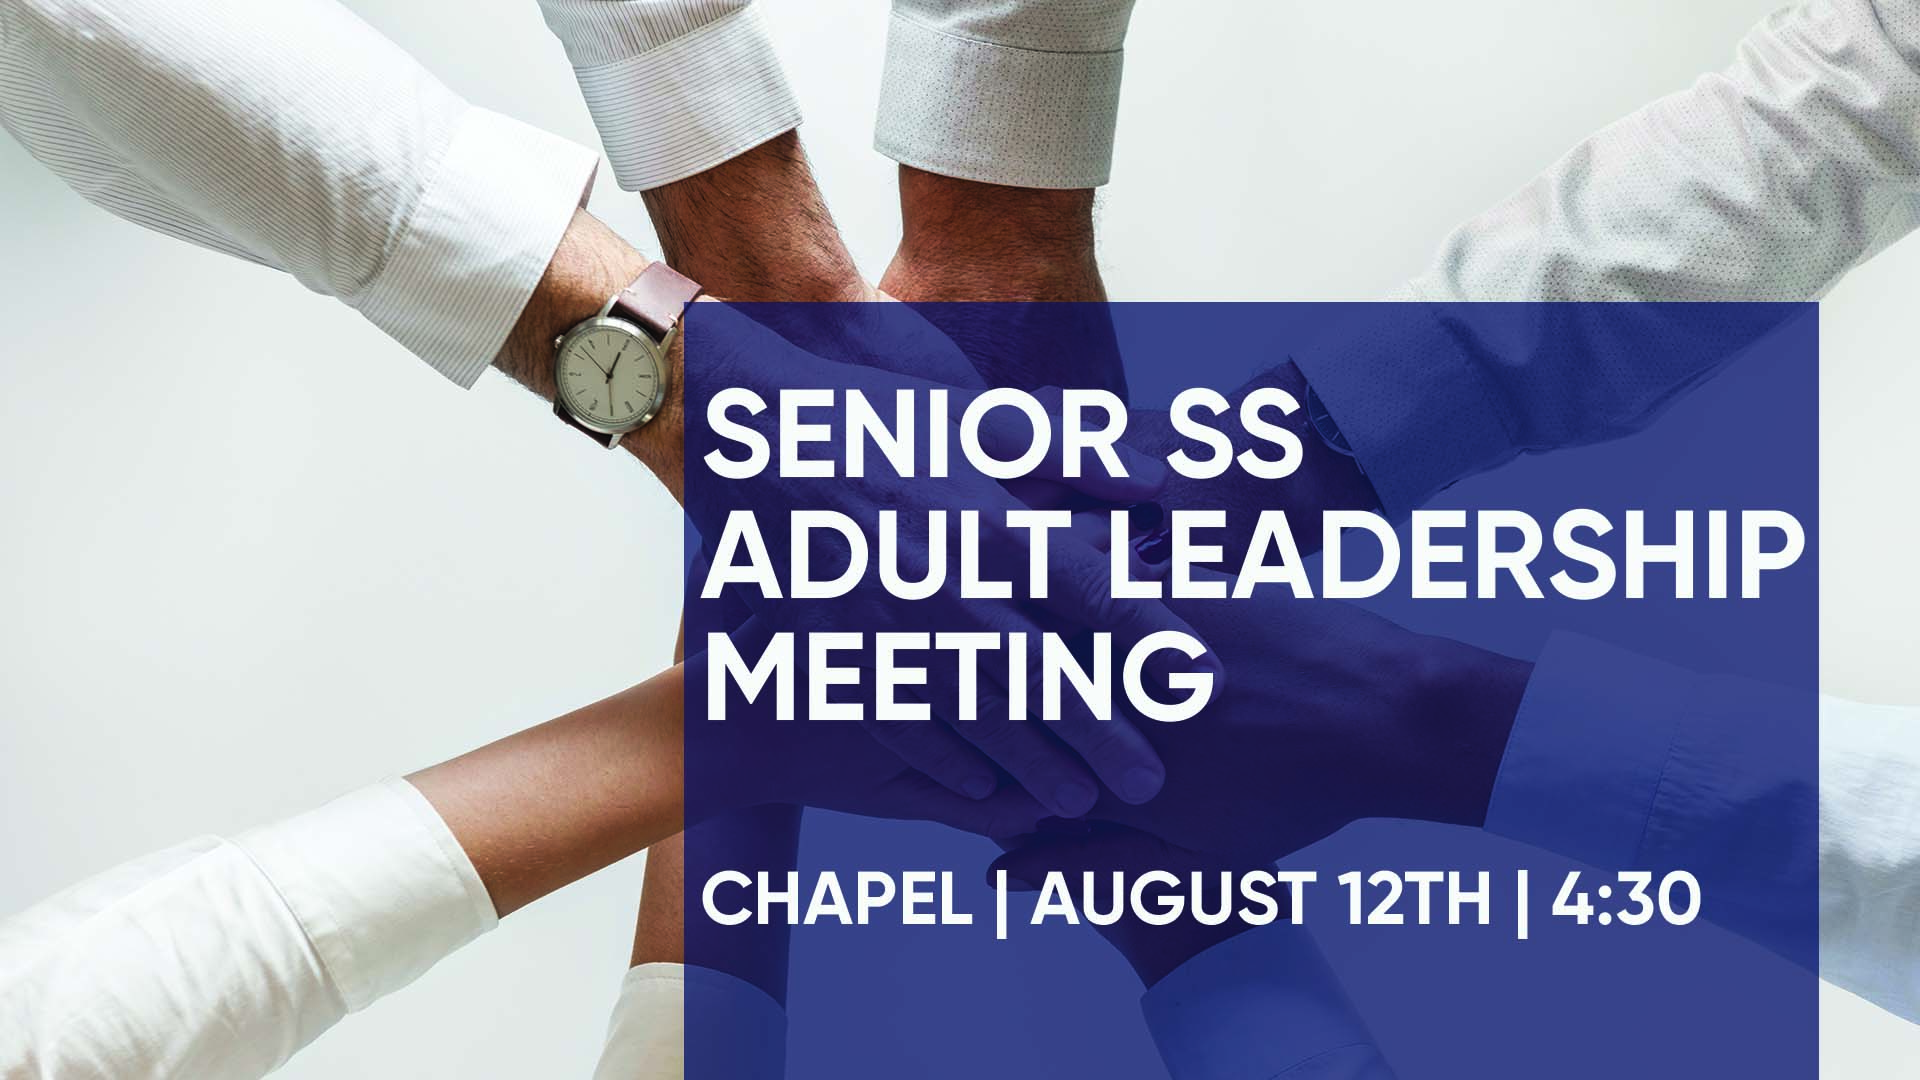 Senior Sunday School Adult Leadership Meeting